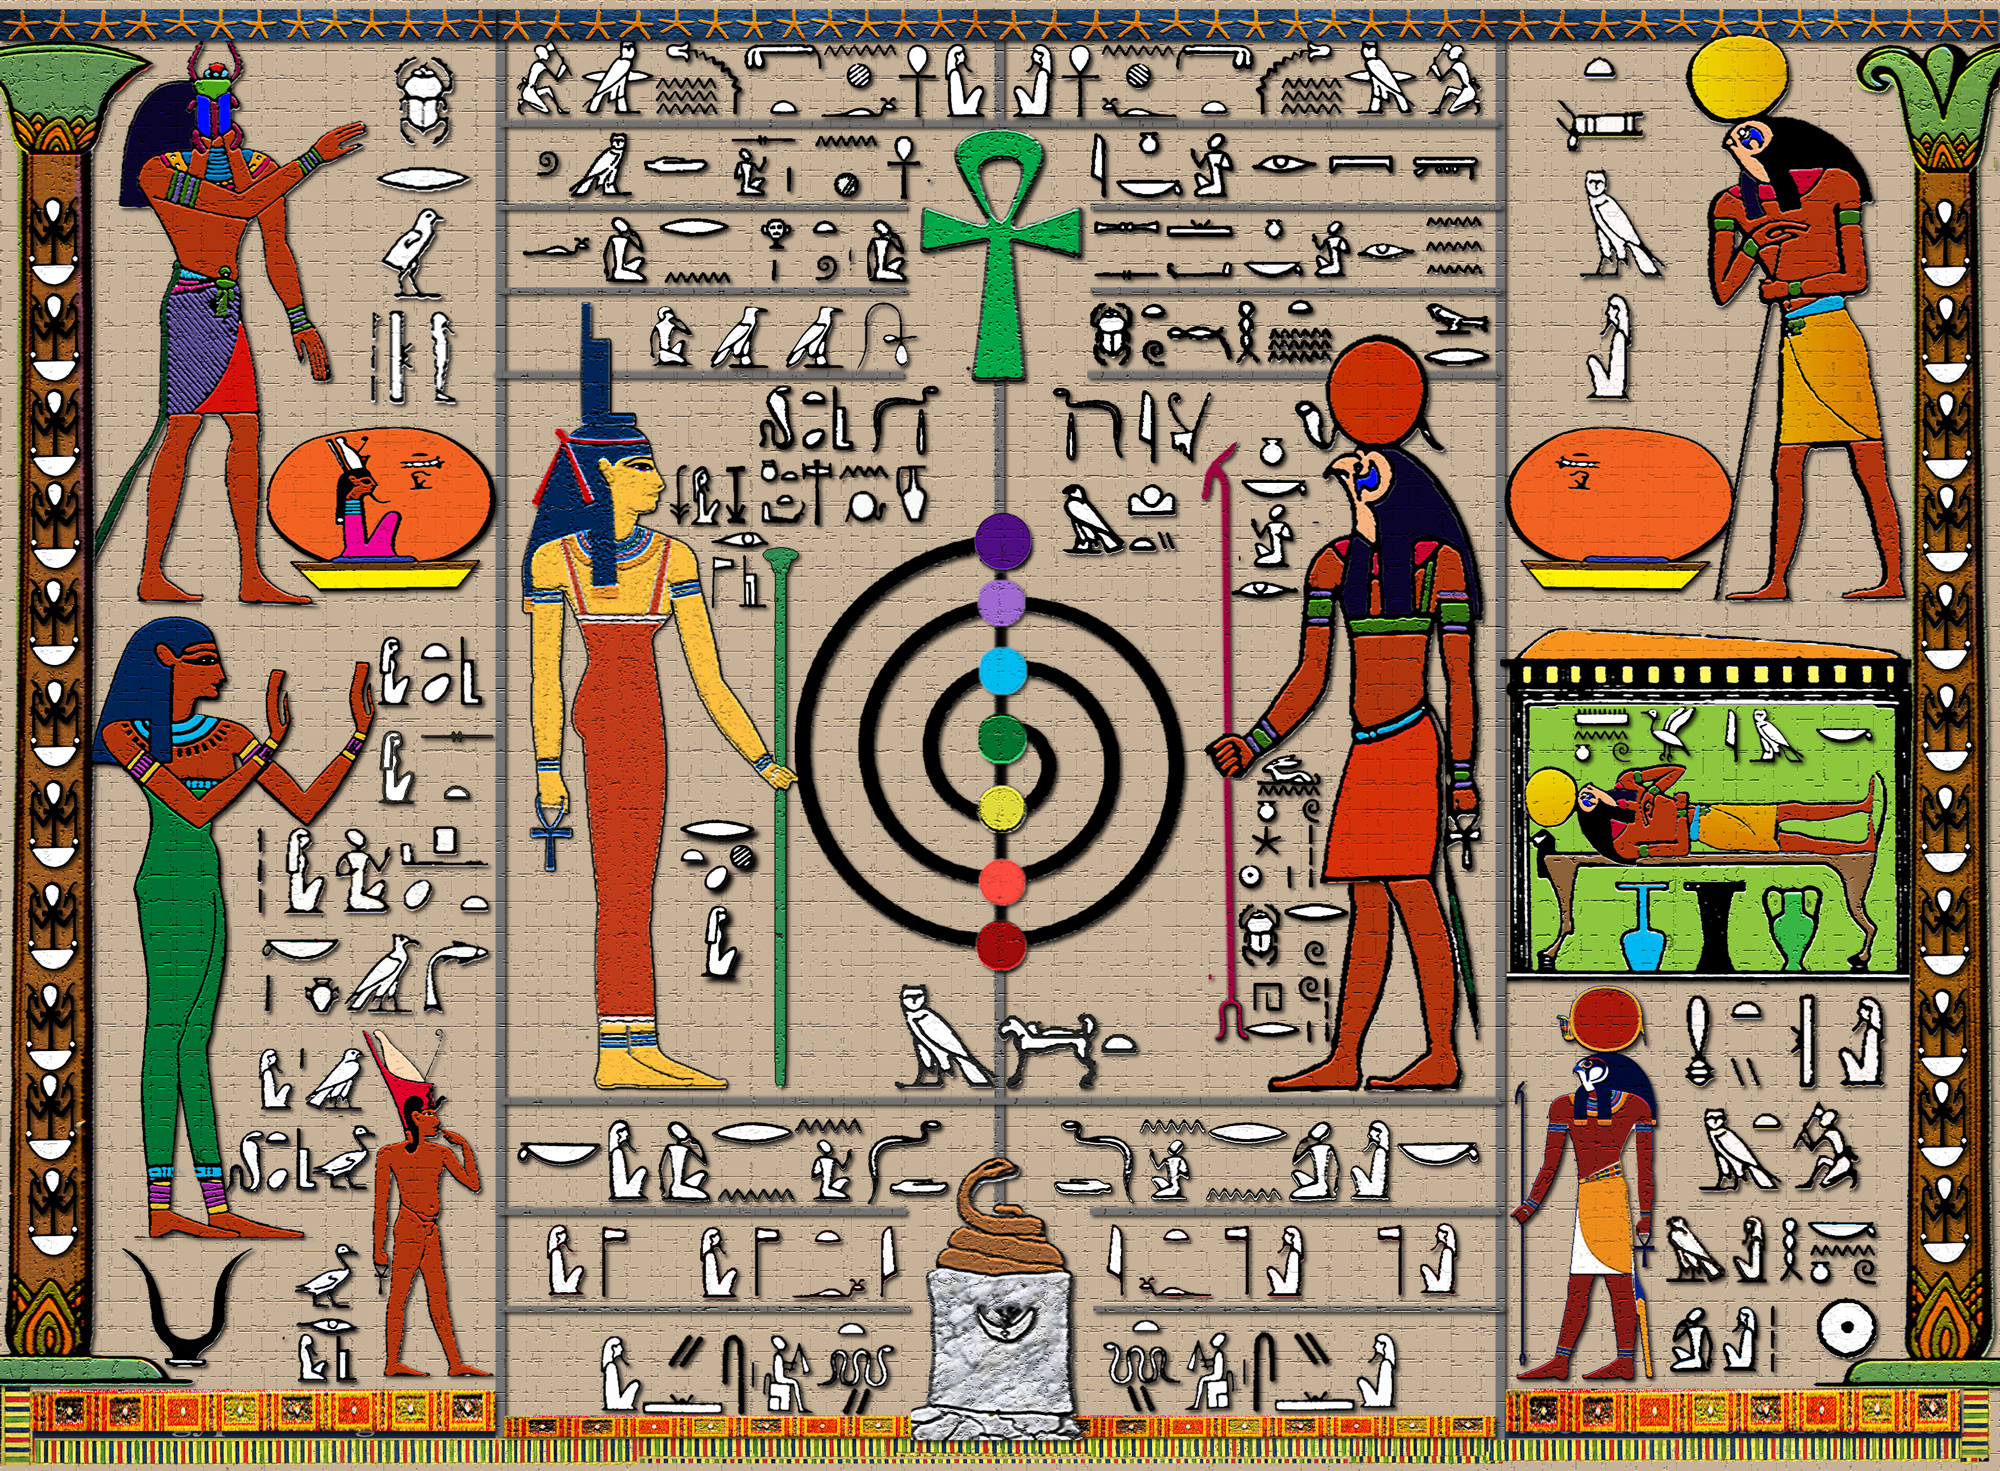 Poster-for-Meditation-of-Set-and-Ra-scripture-v33-New-Config-Recovered-EXP-with-shadow-forKU